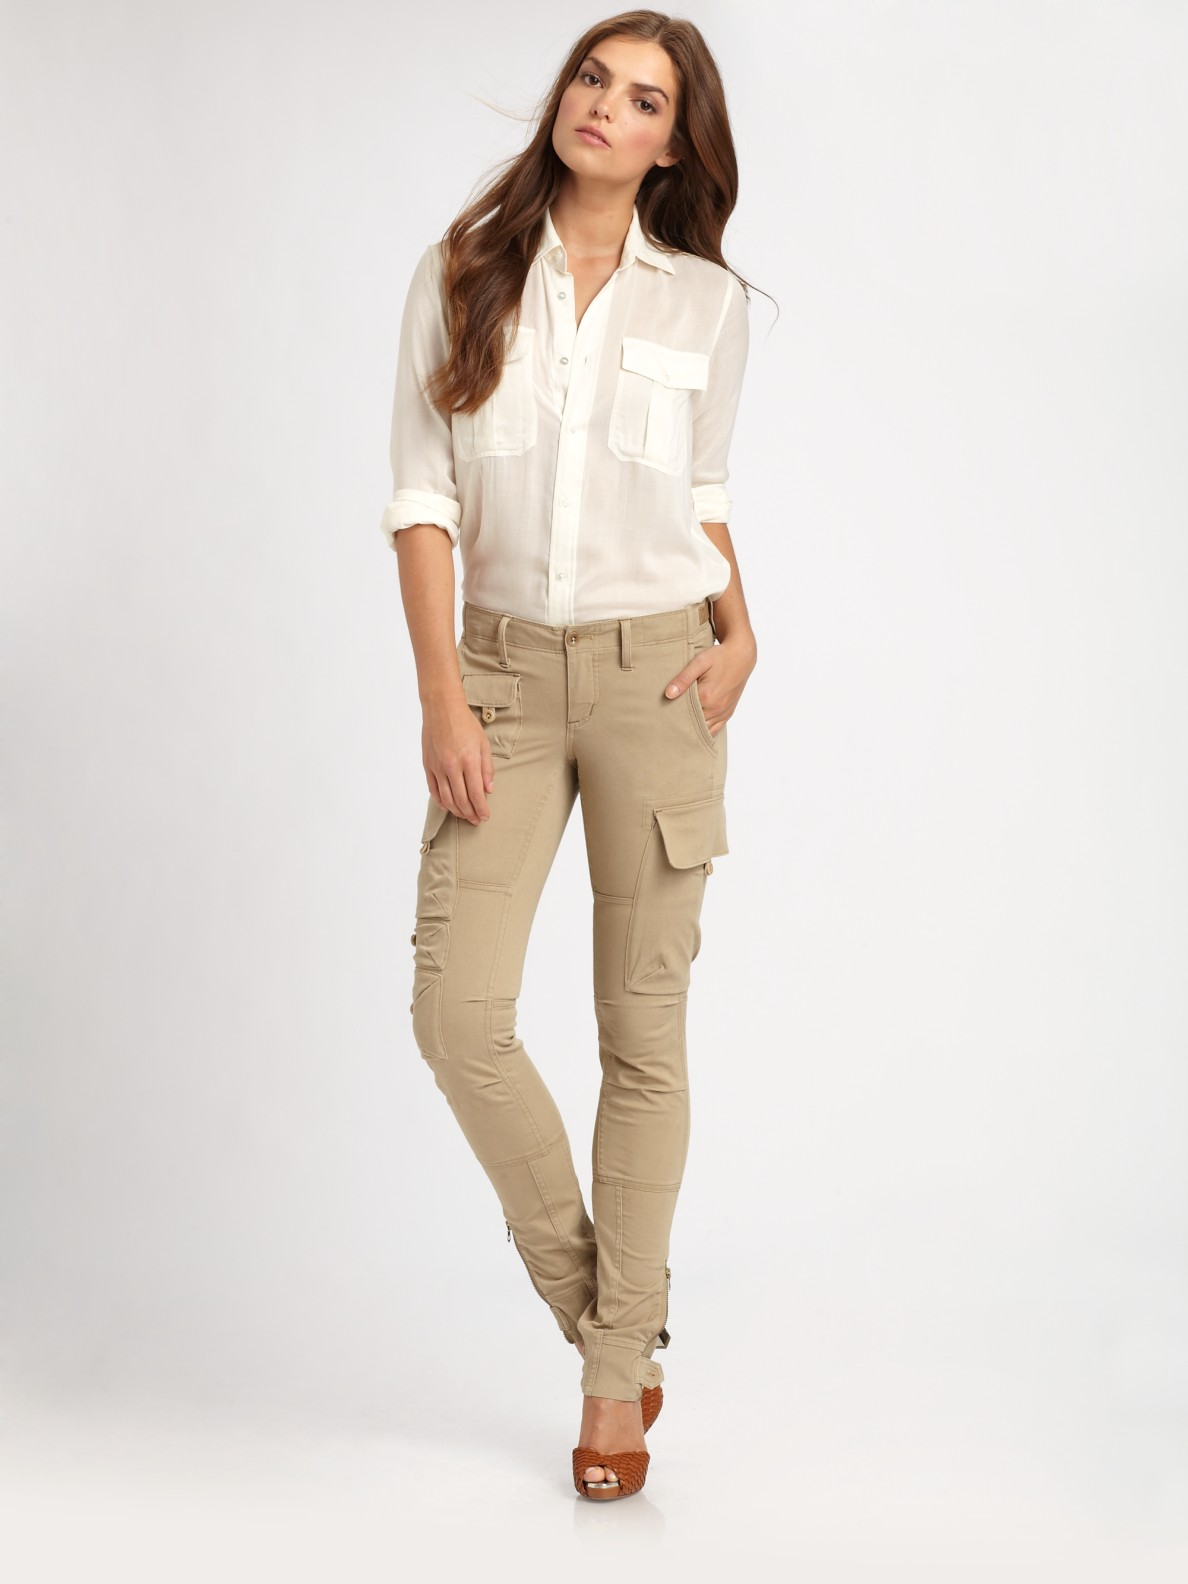 Ralph lauren blue label Twill Cargo Pants in Natural | Lyst